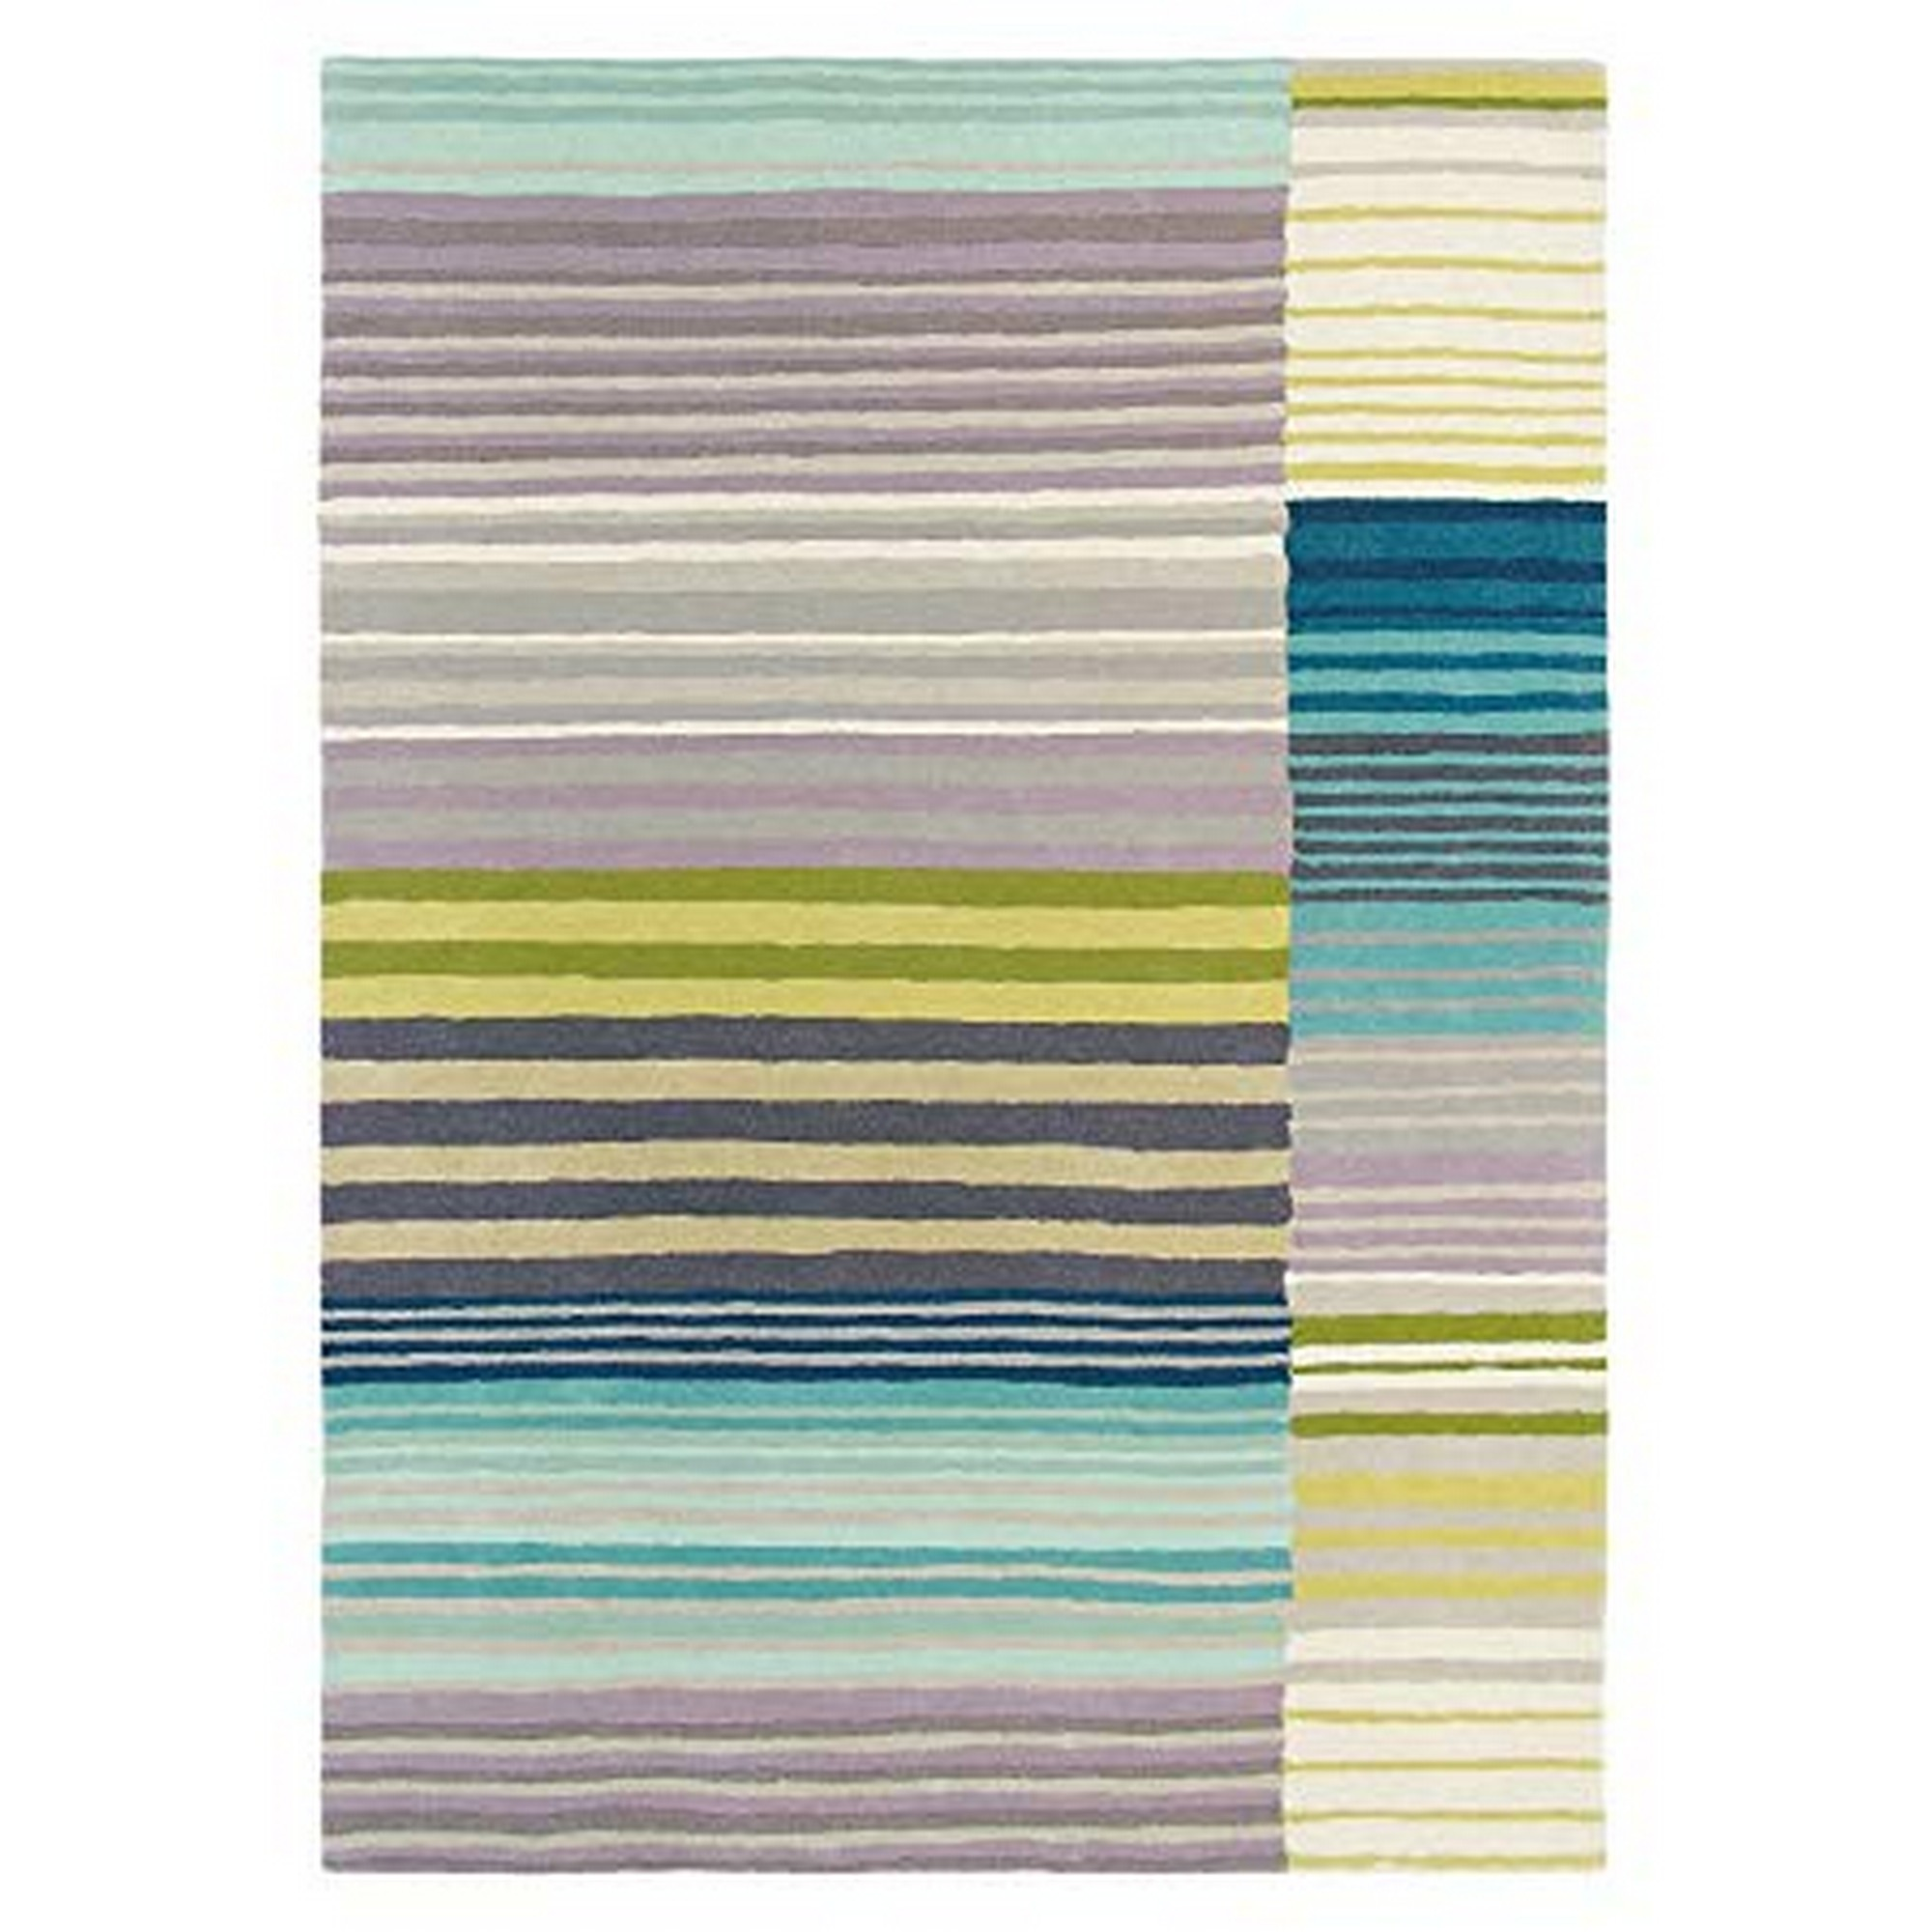 Scion Medini Rugs 25908 in Lagoon